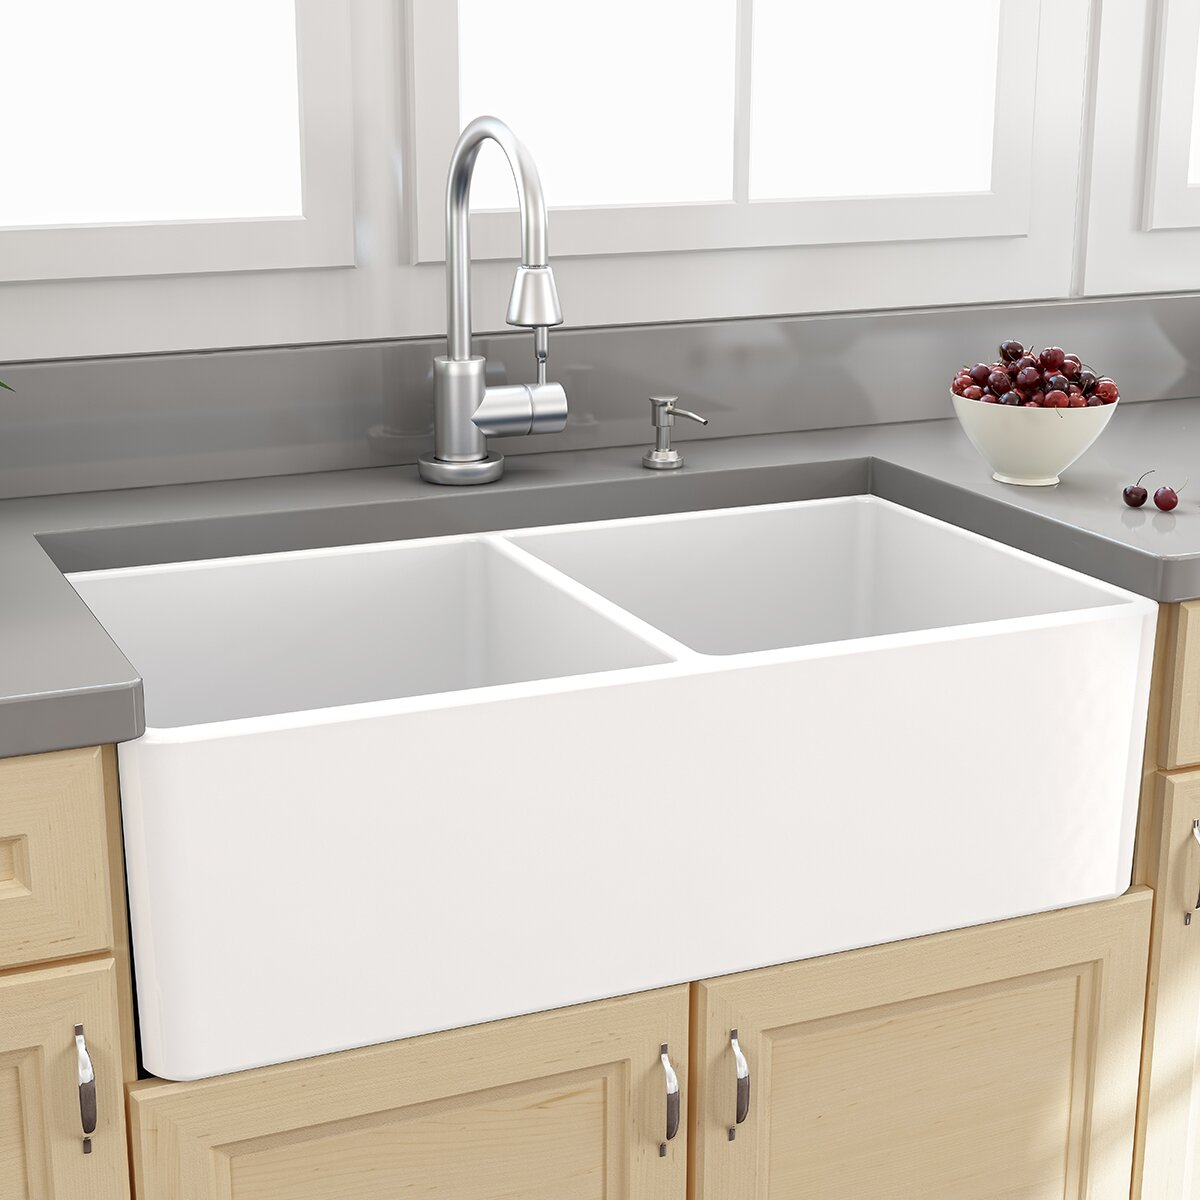 "Nantucket Sinks Farmhouse 33"" x 18"" Double Bowl Kitchen Sink with G"